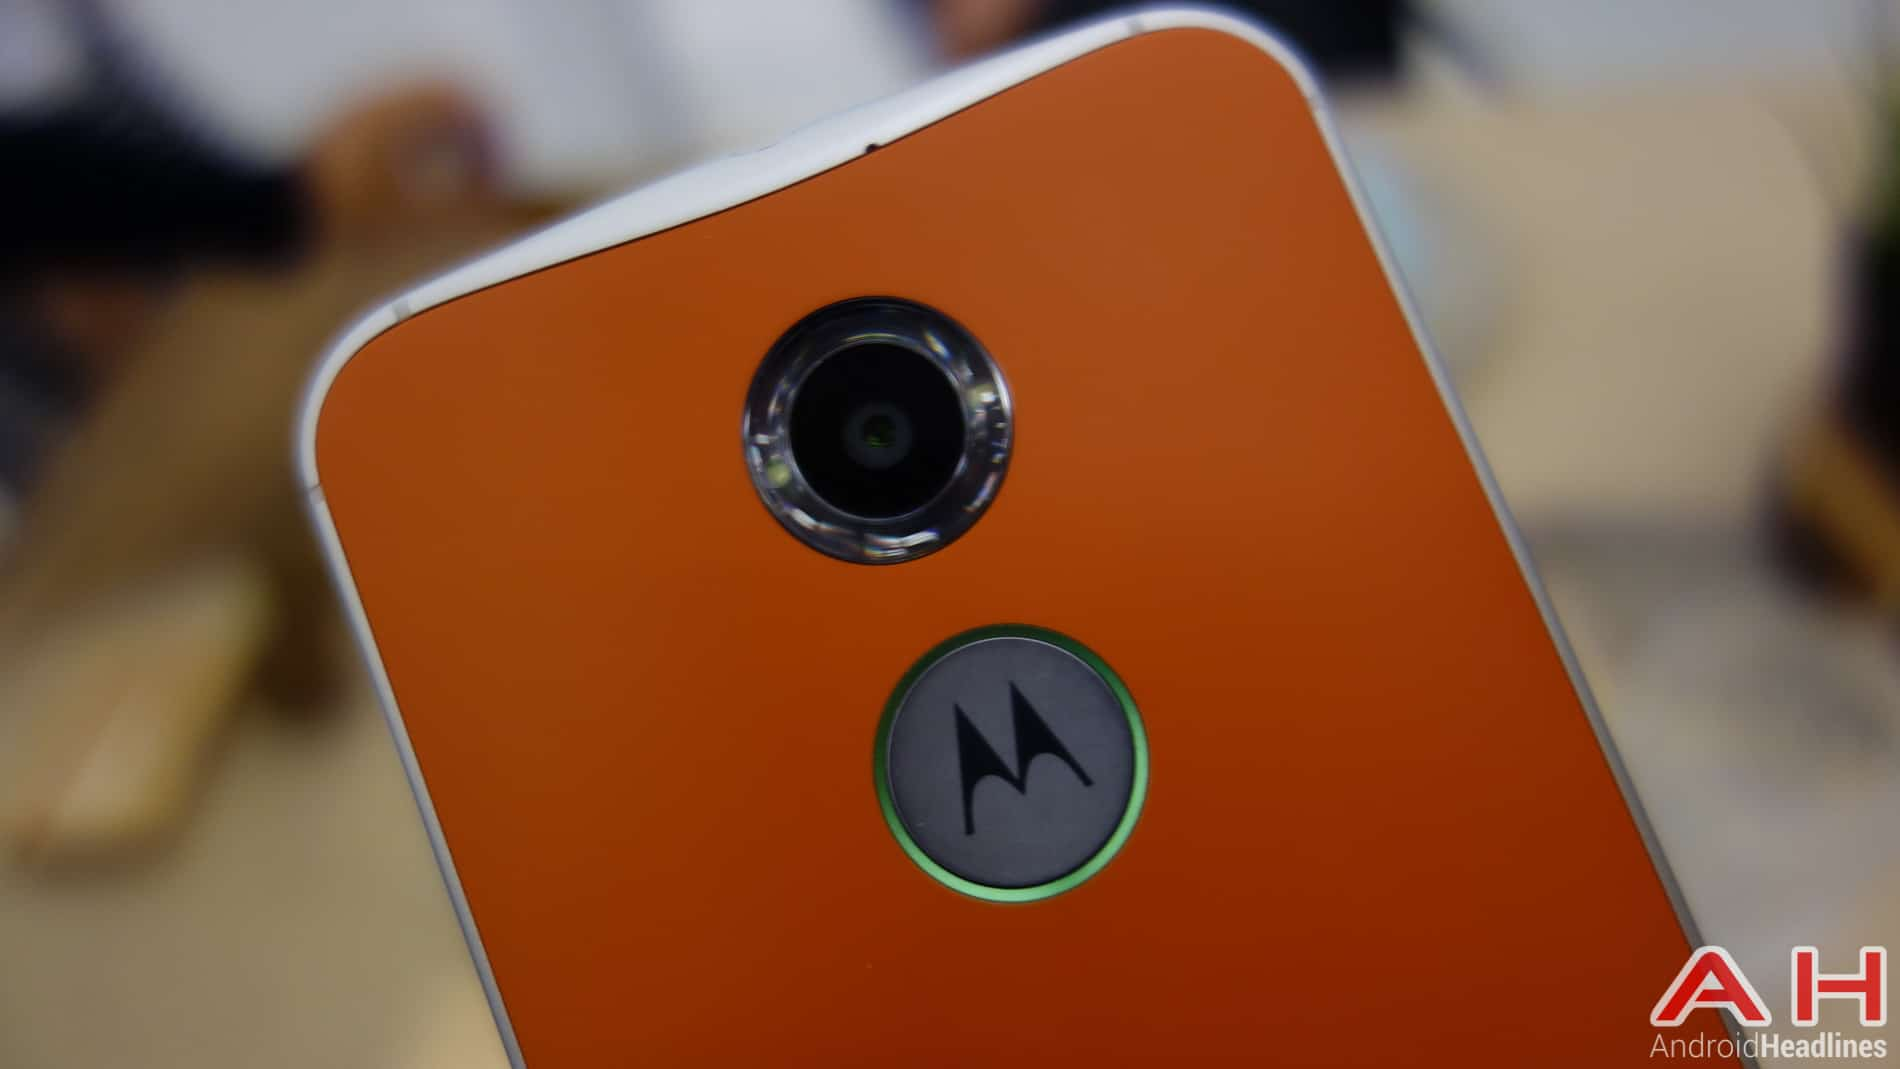 Moto X (2014) Gets The TWRP Custom Recovery Treatment